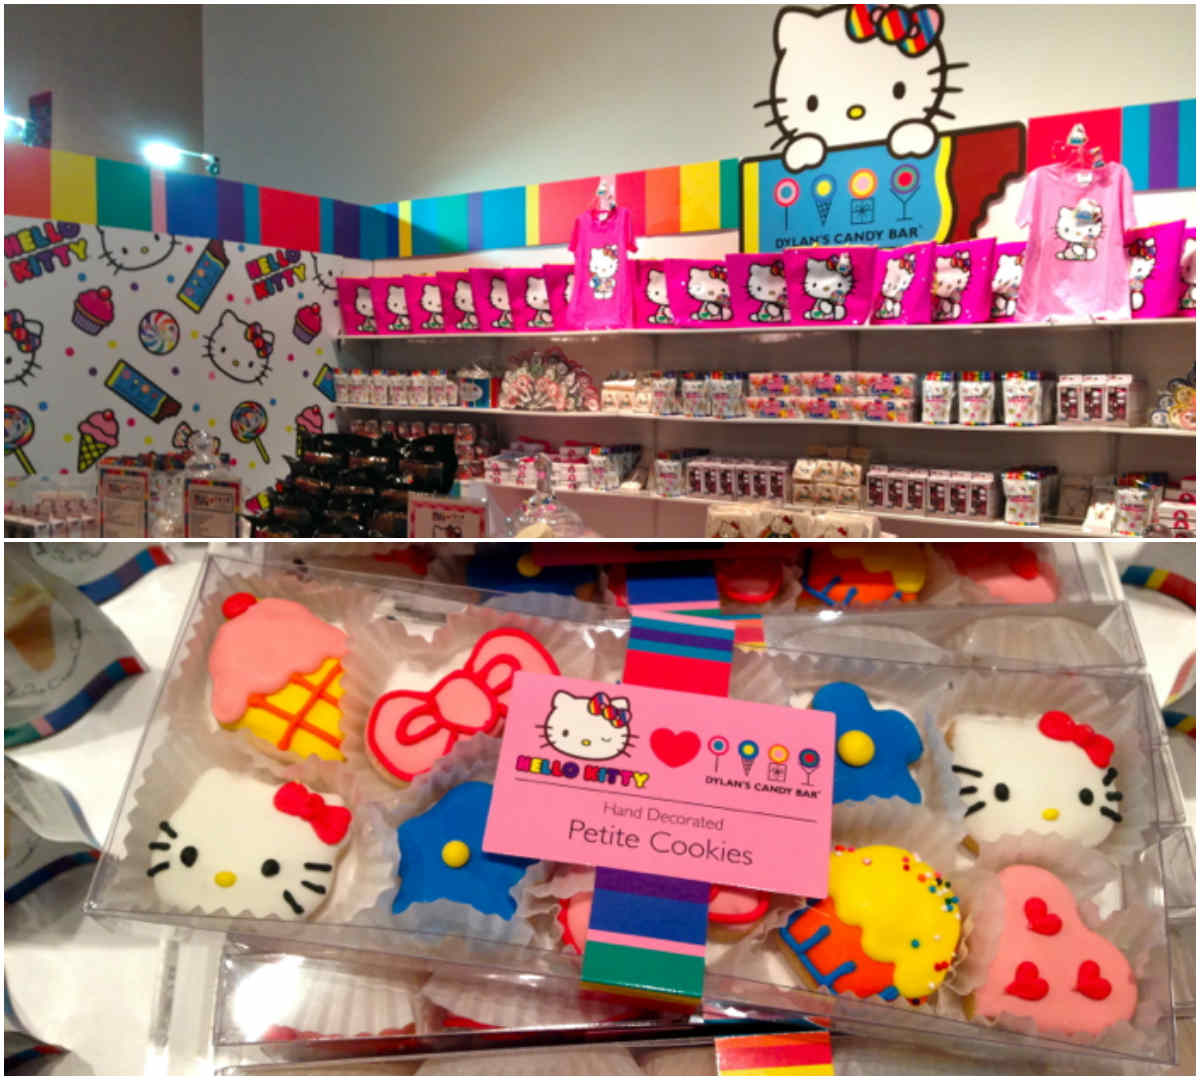 Dylan's-Candy-Bar-Hello-Kitty-Con